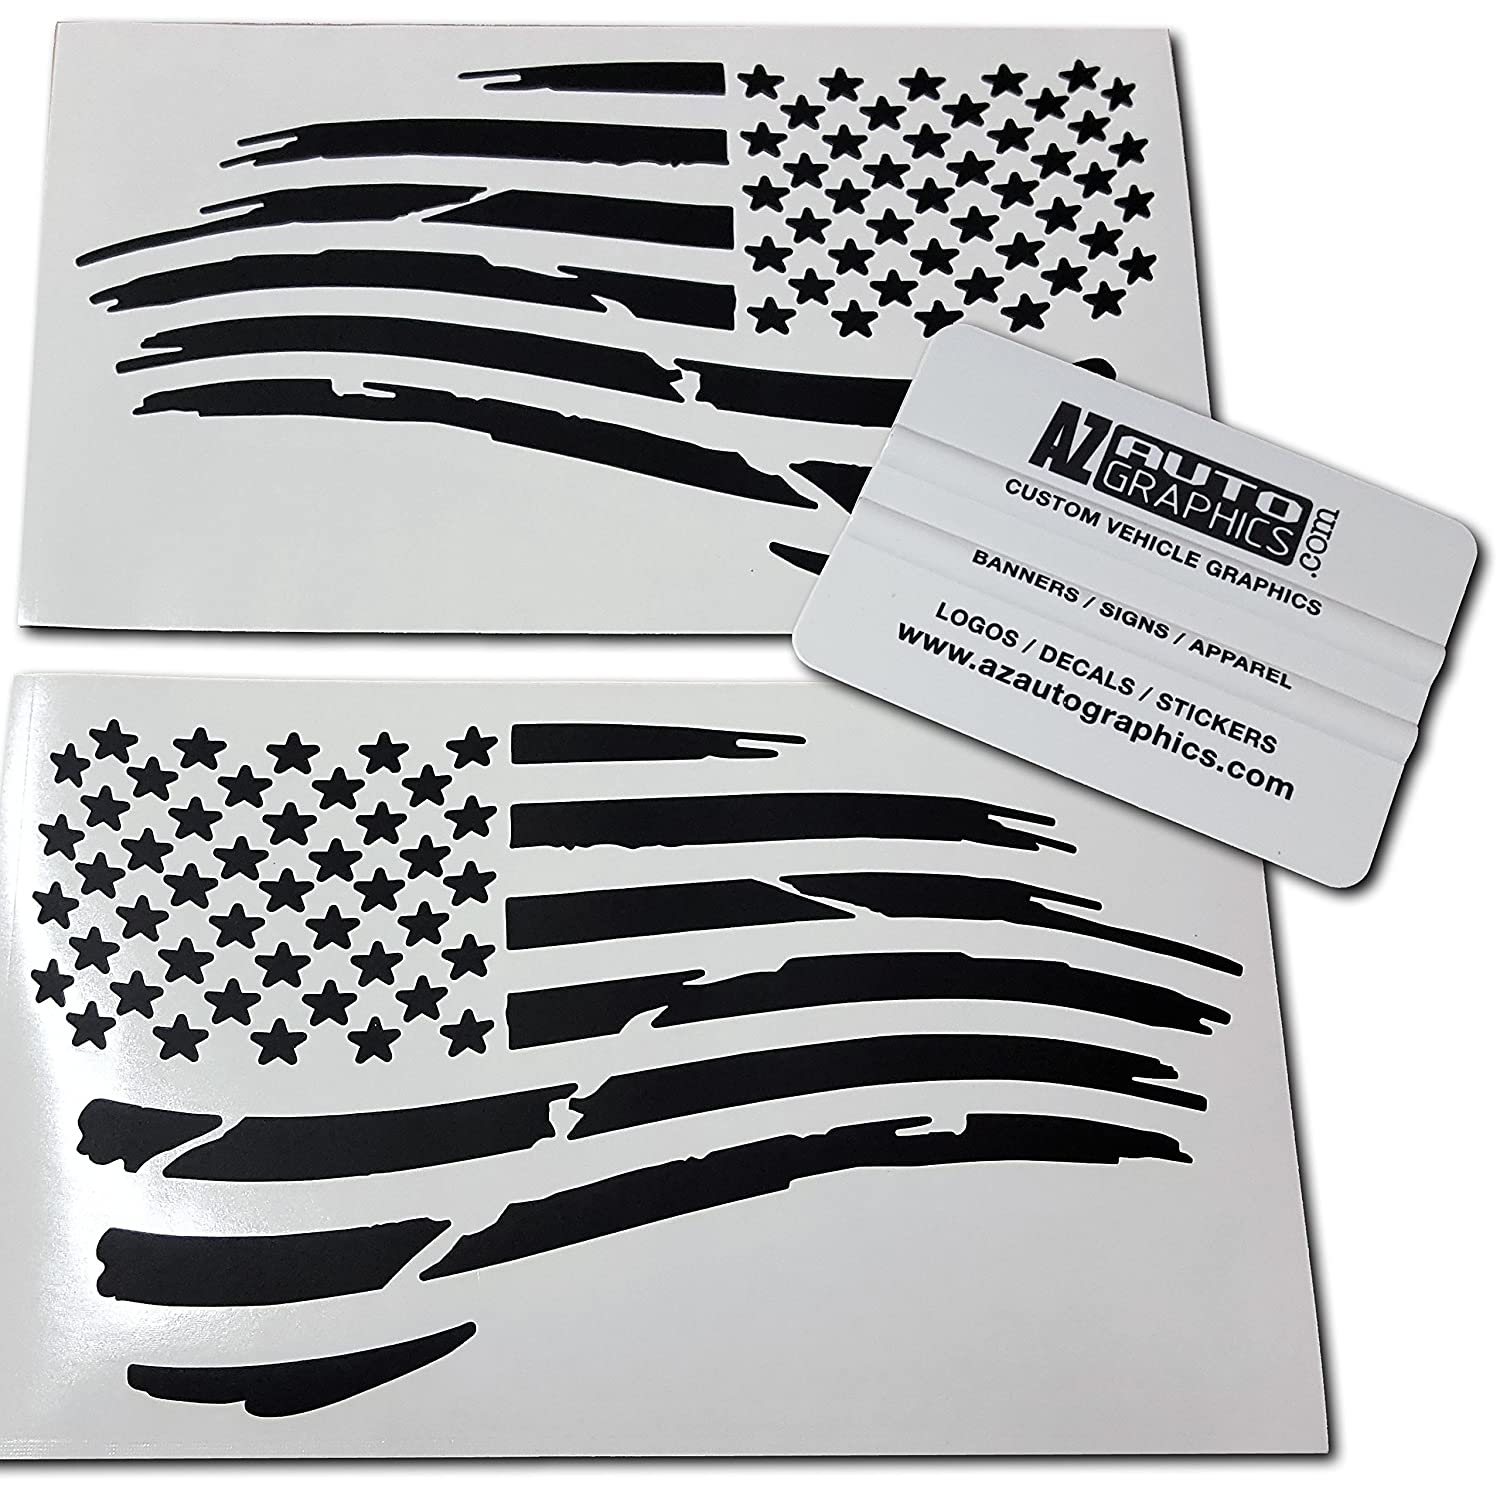 Az AutoGraphics Pair Distressed USA American Flag Decal Die-Cut Grunge Subdued Tattered Military (Black)